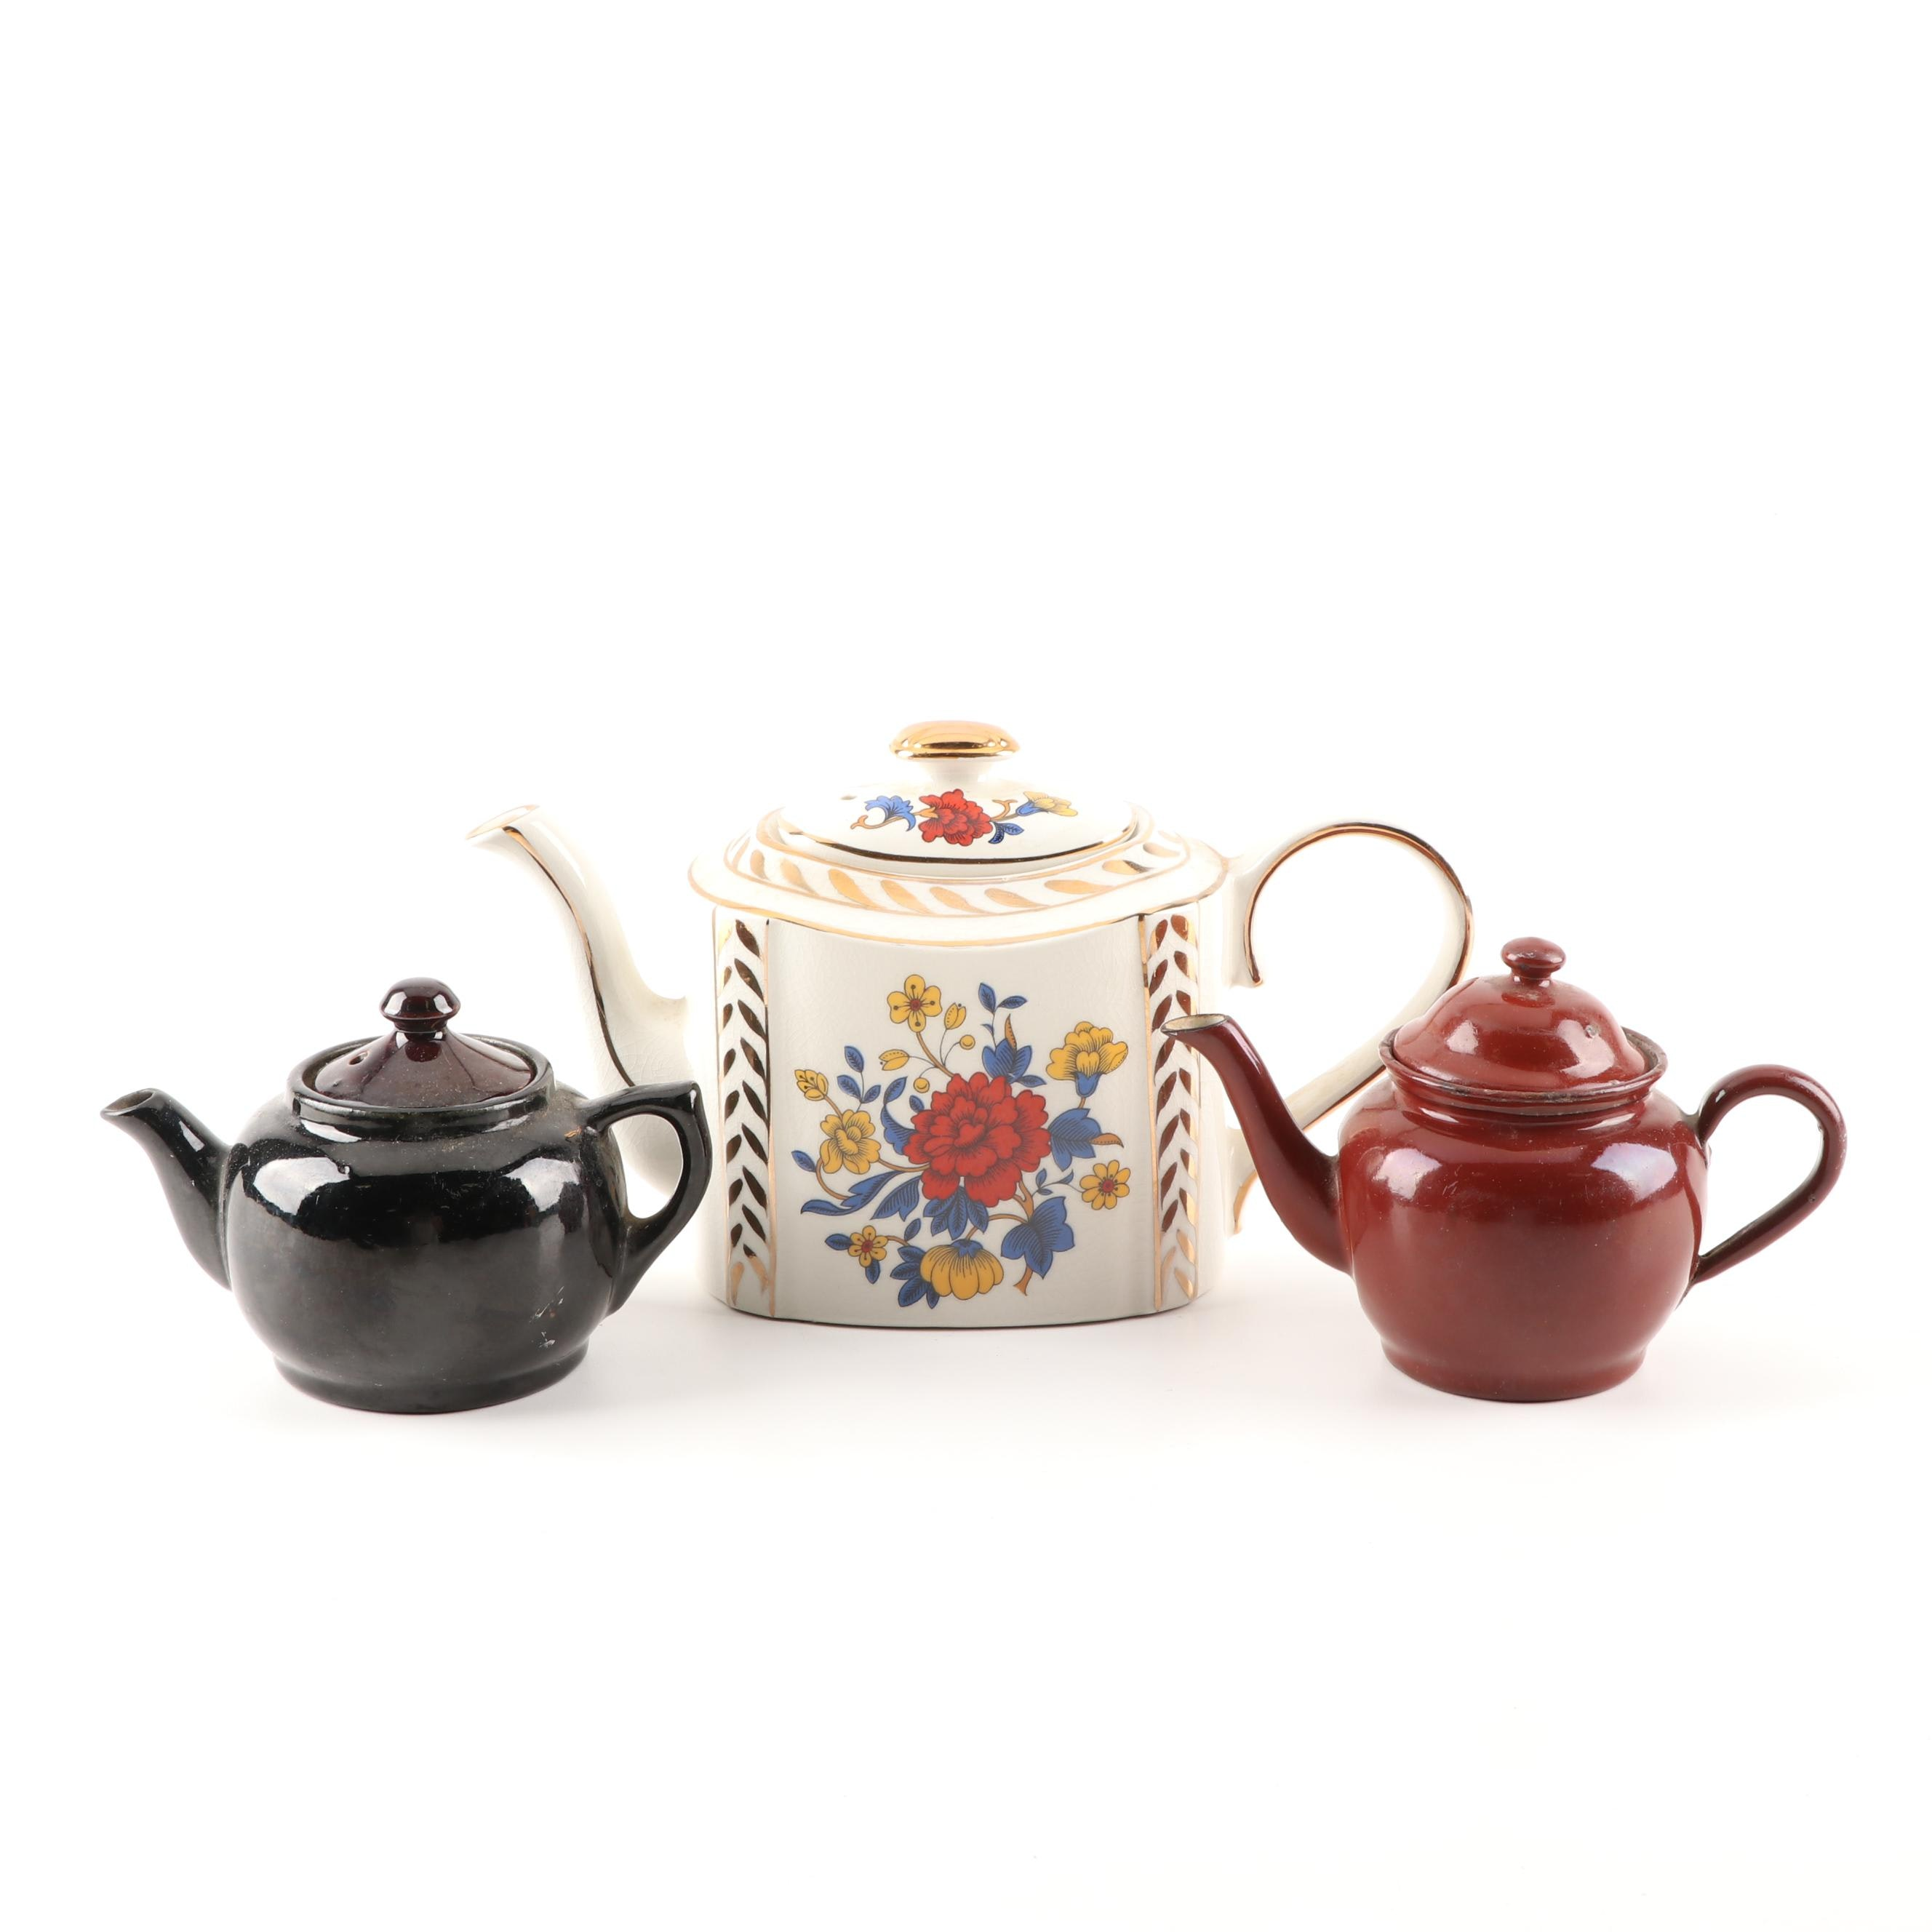 Grouping of Ceramic Tea Pots Featuring Royal Arthur Wood, Mid-Century